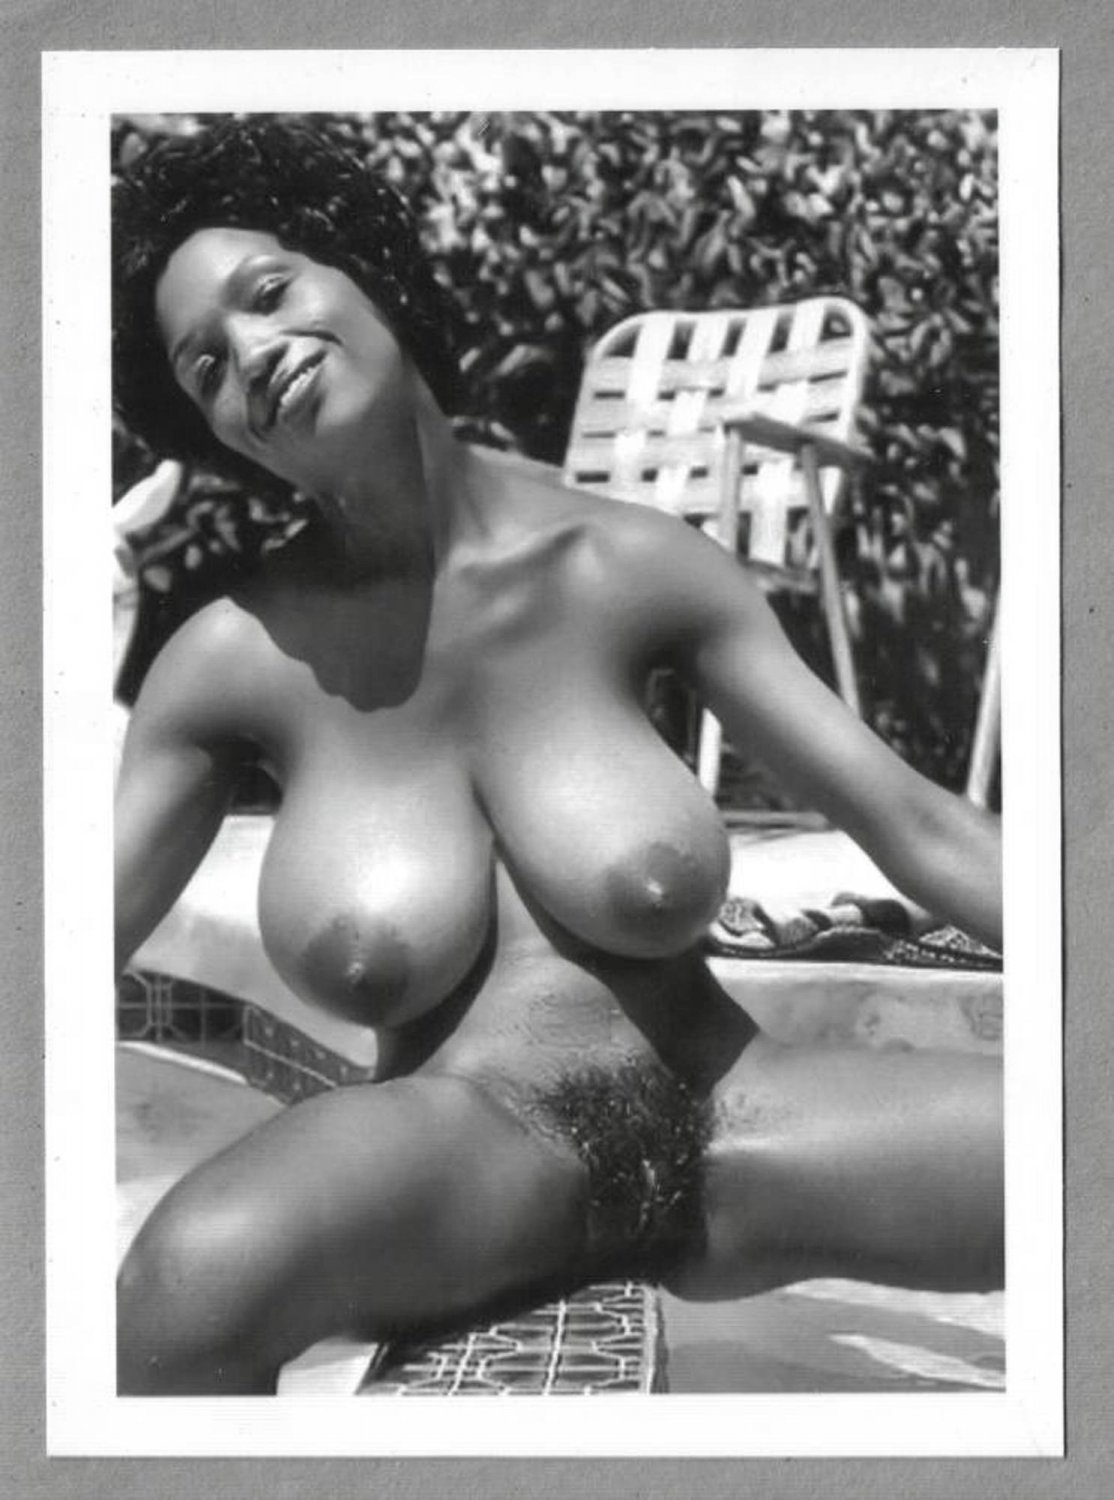 EBONY SYLVIA MCFARLAND TOPLESS NUDE HUGE BREASTS HAIRY PUSSY NEW REPRINT 5X7 SM-14